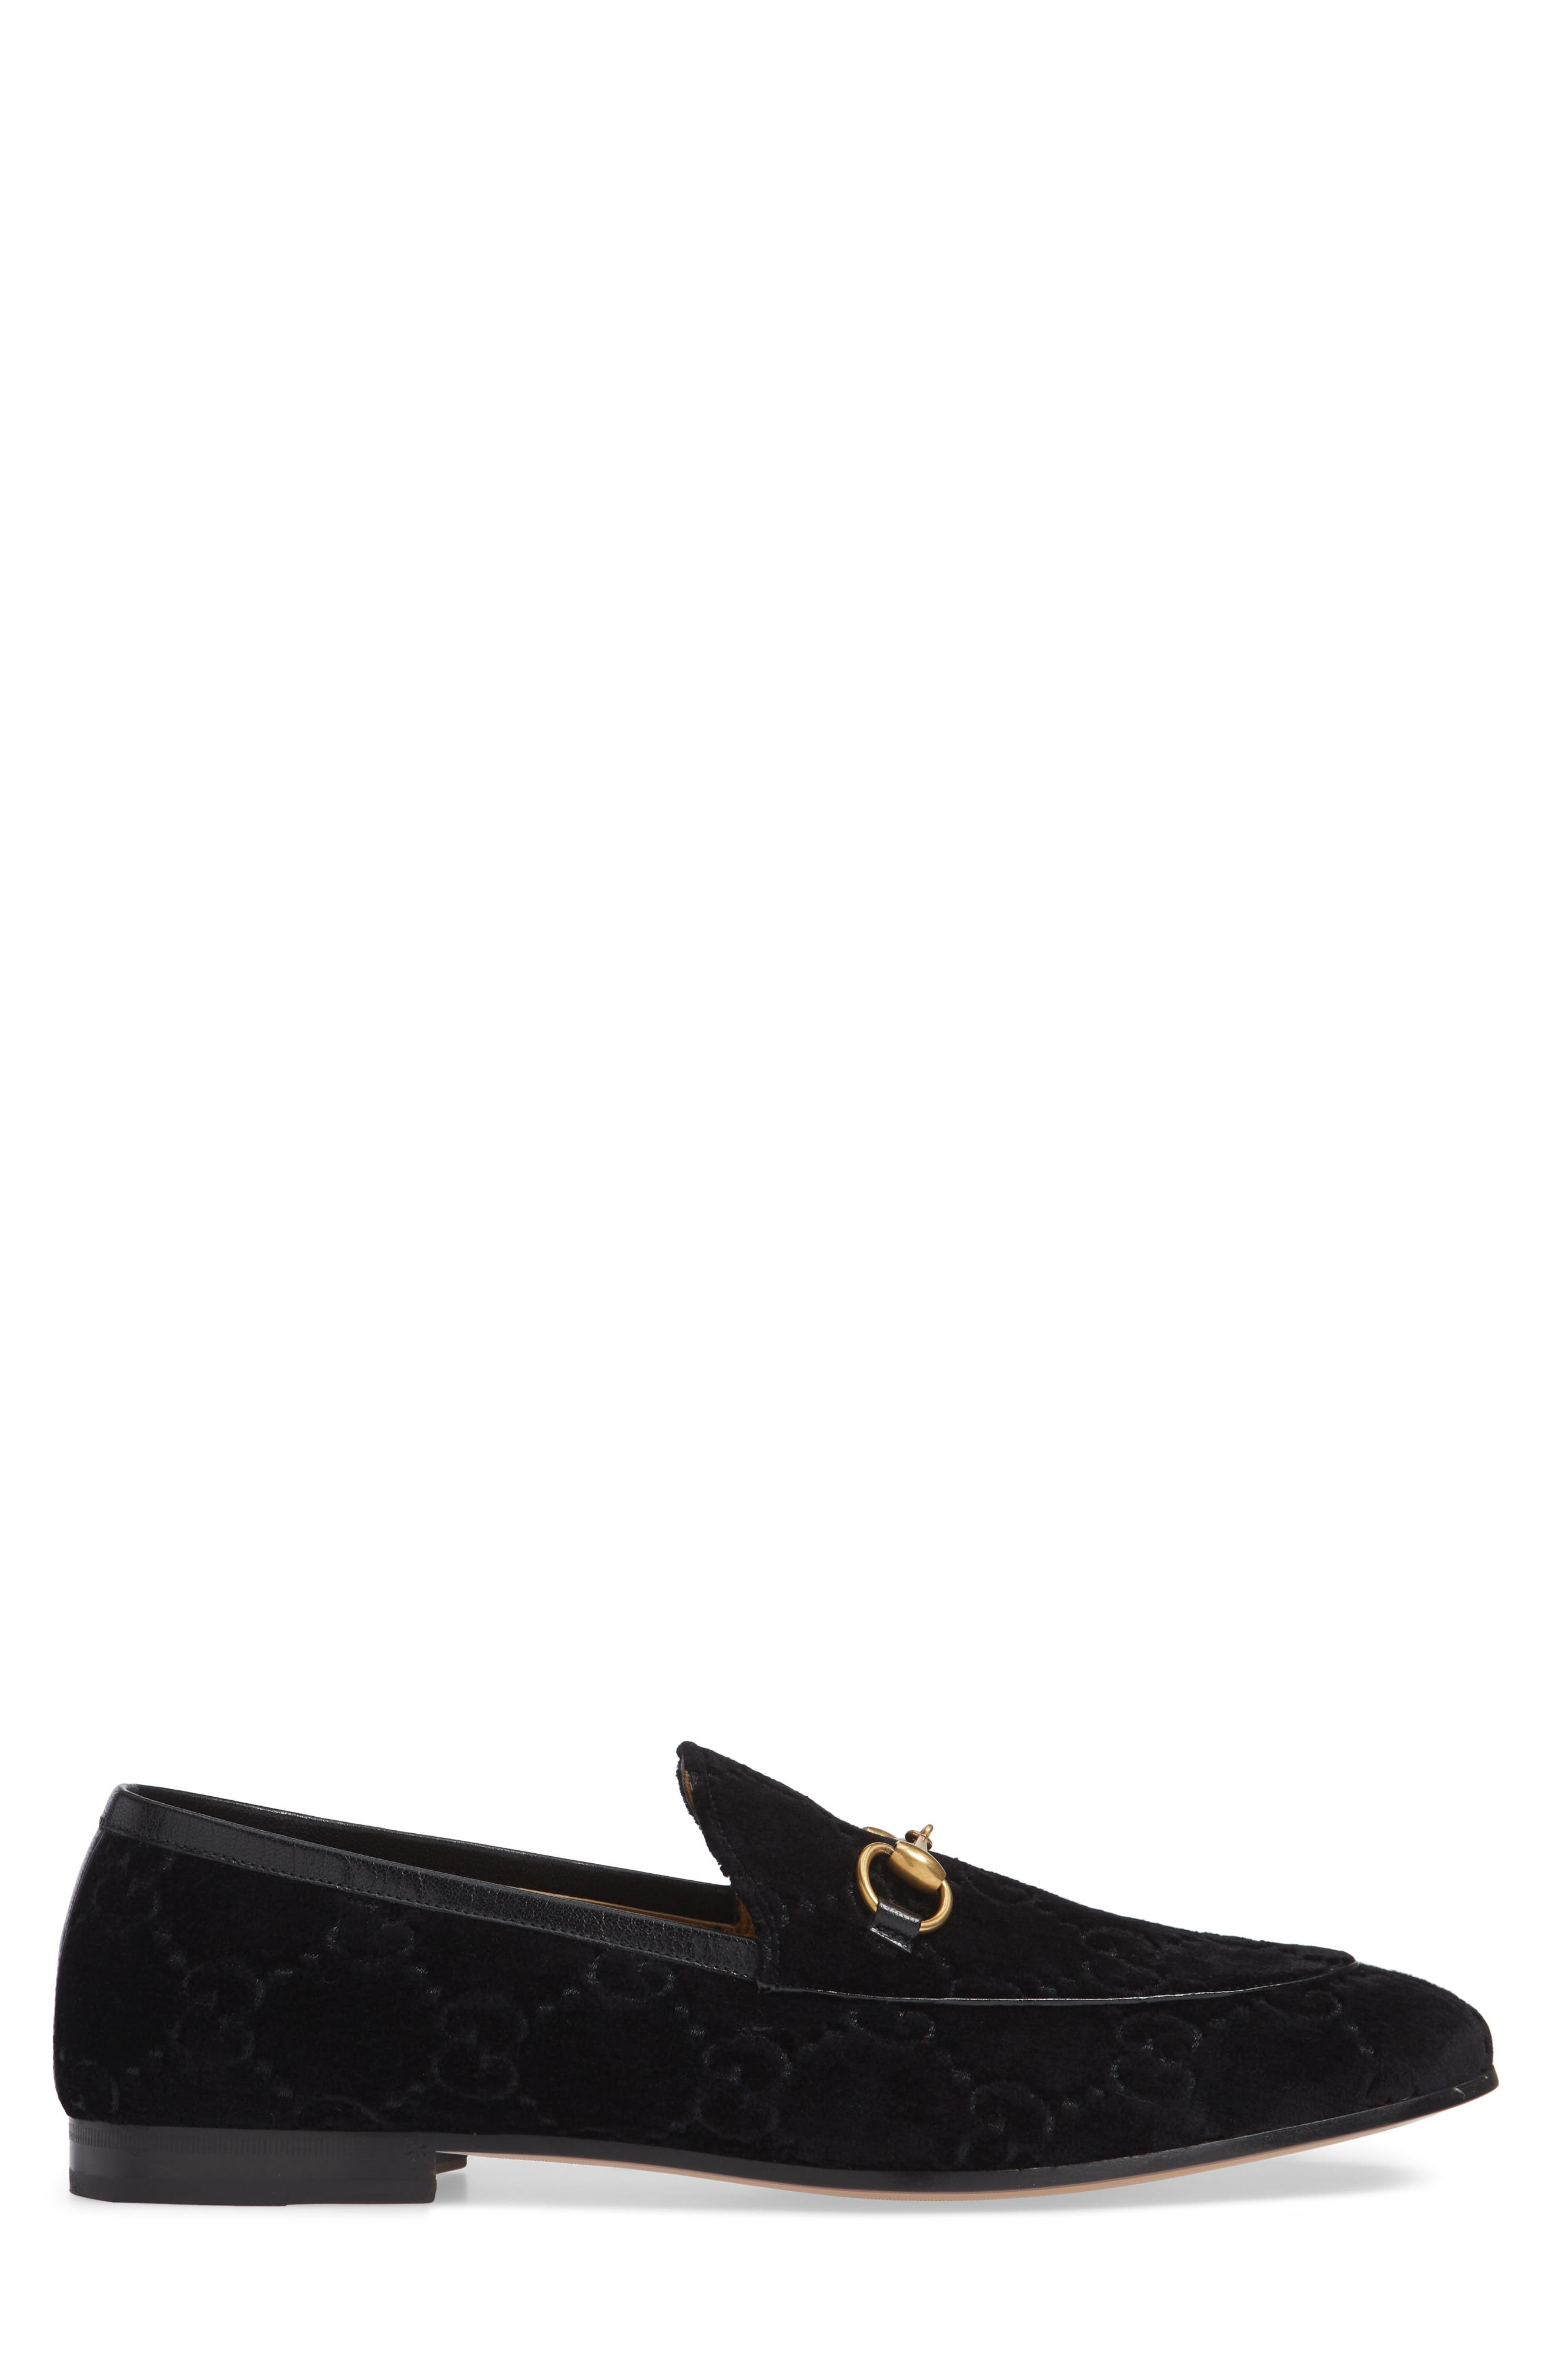 GUCCI, Jordaan GG Velvet Loafer, Alternate thumbnail 3, color, NERO/ NERO